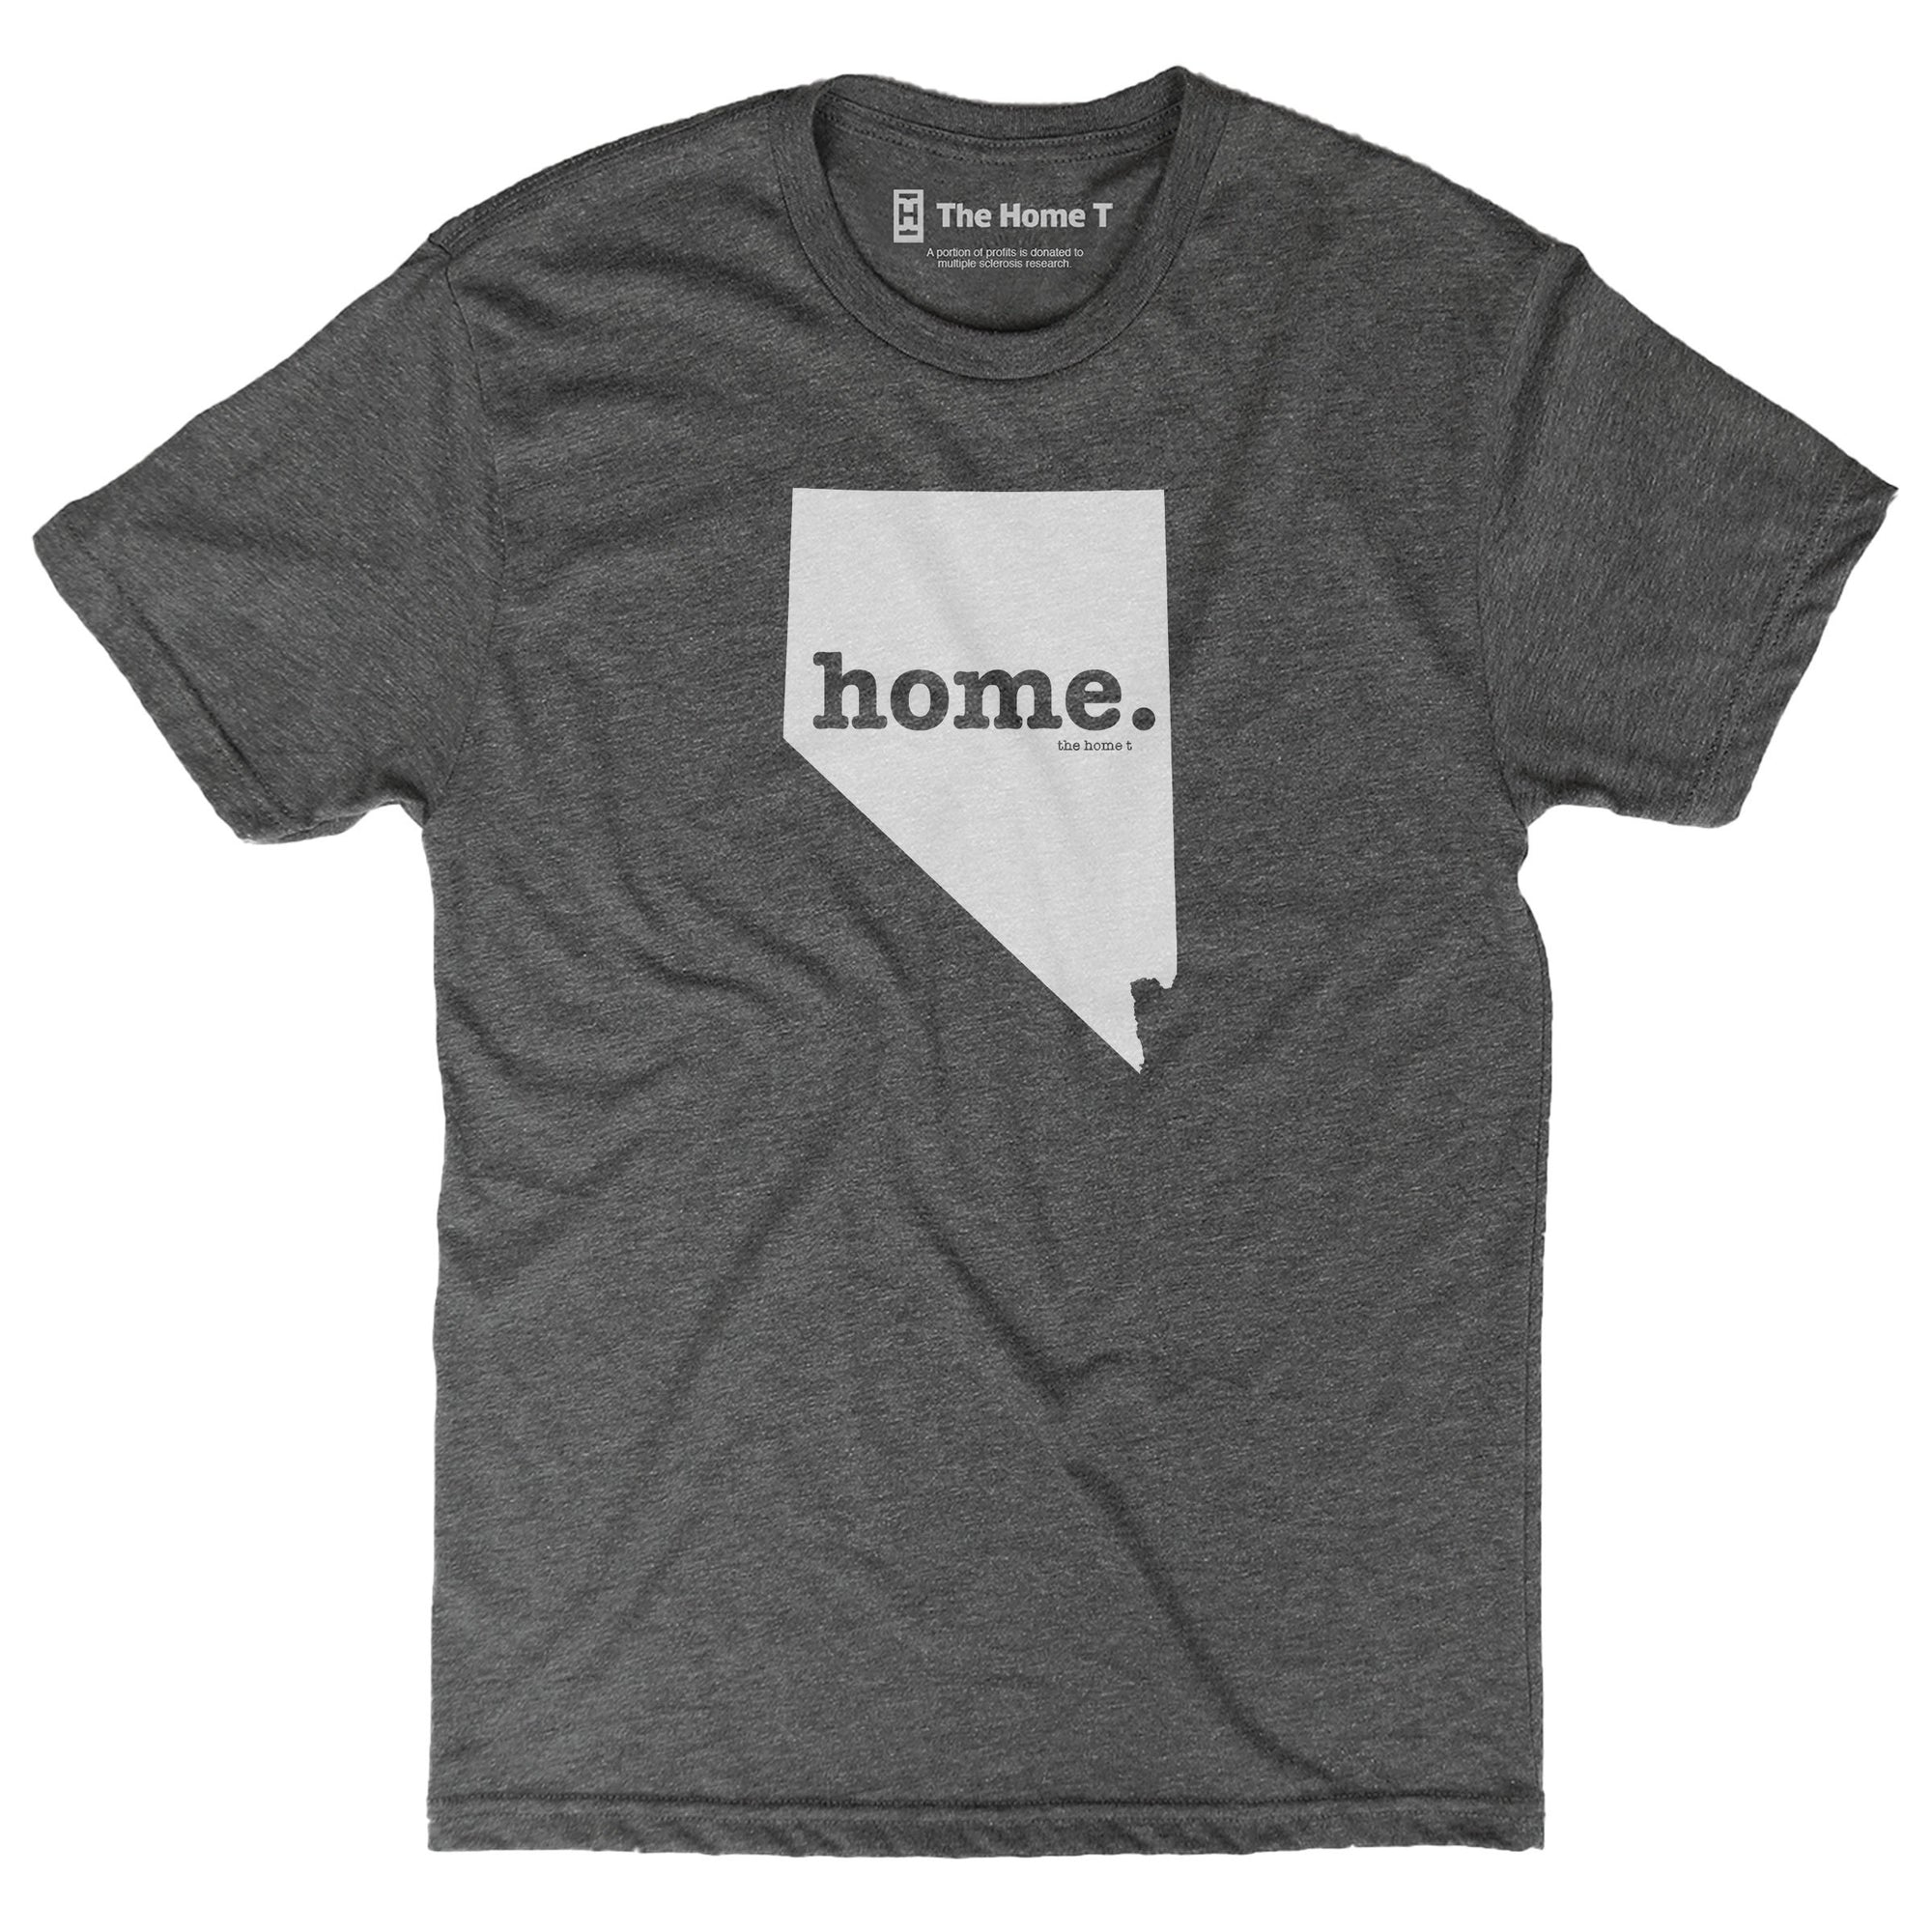 Nevada Home T Original Crew The Home T XXL Grey